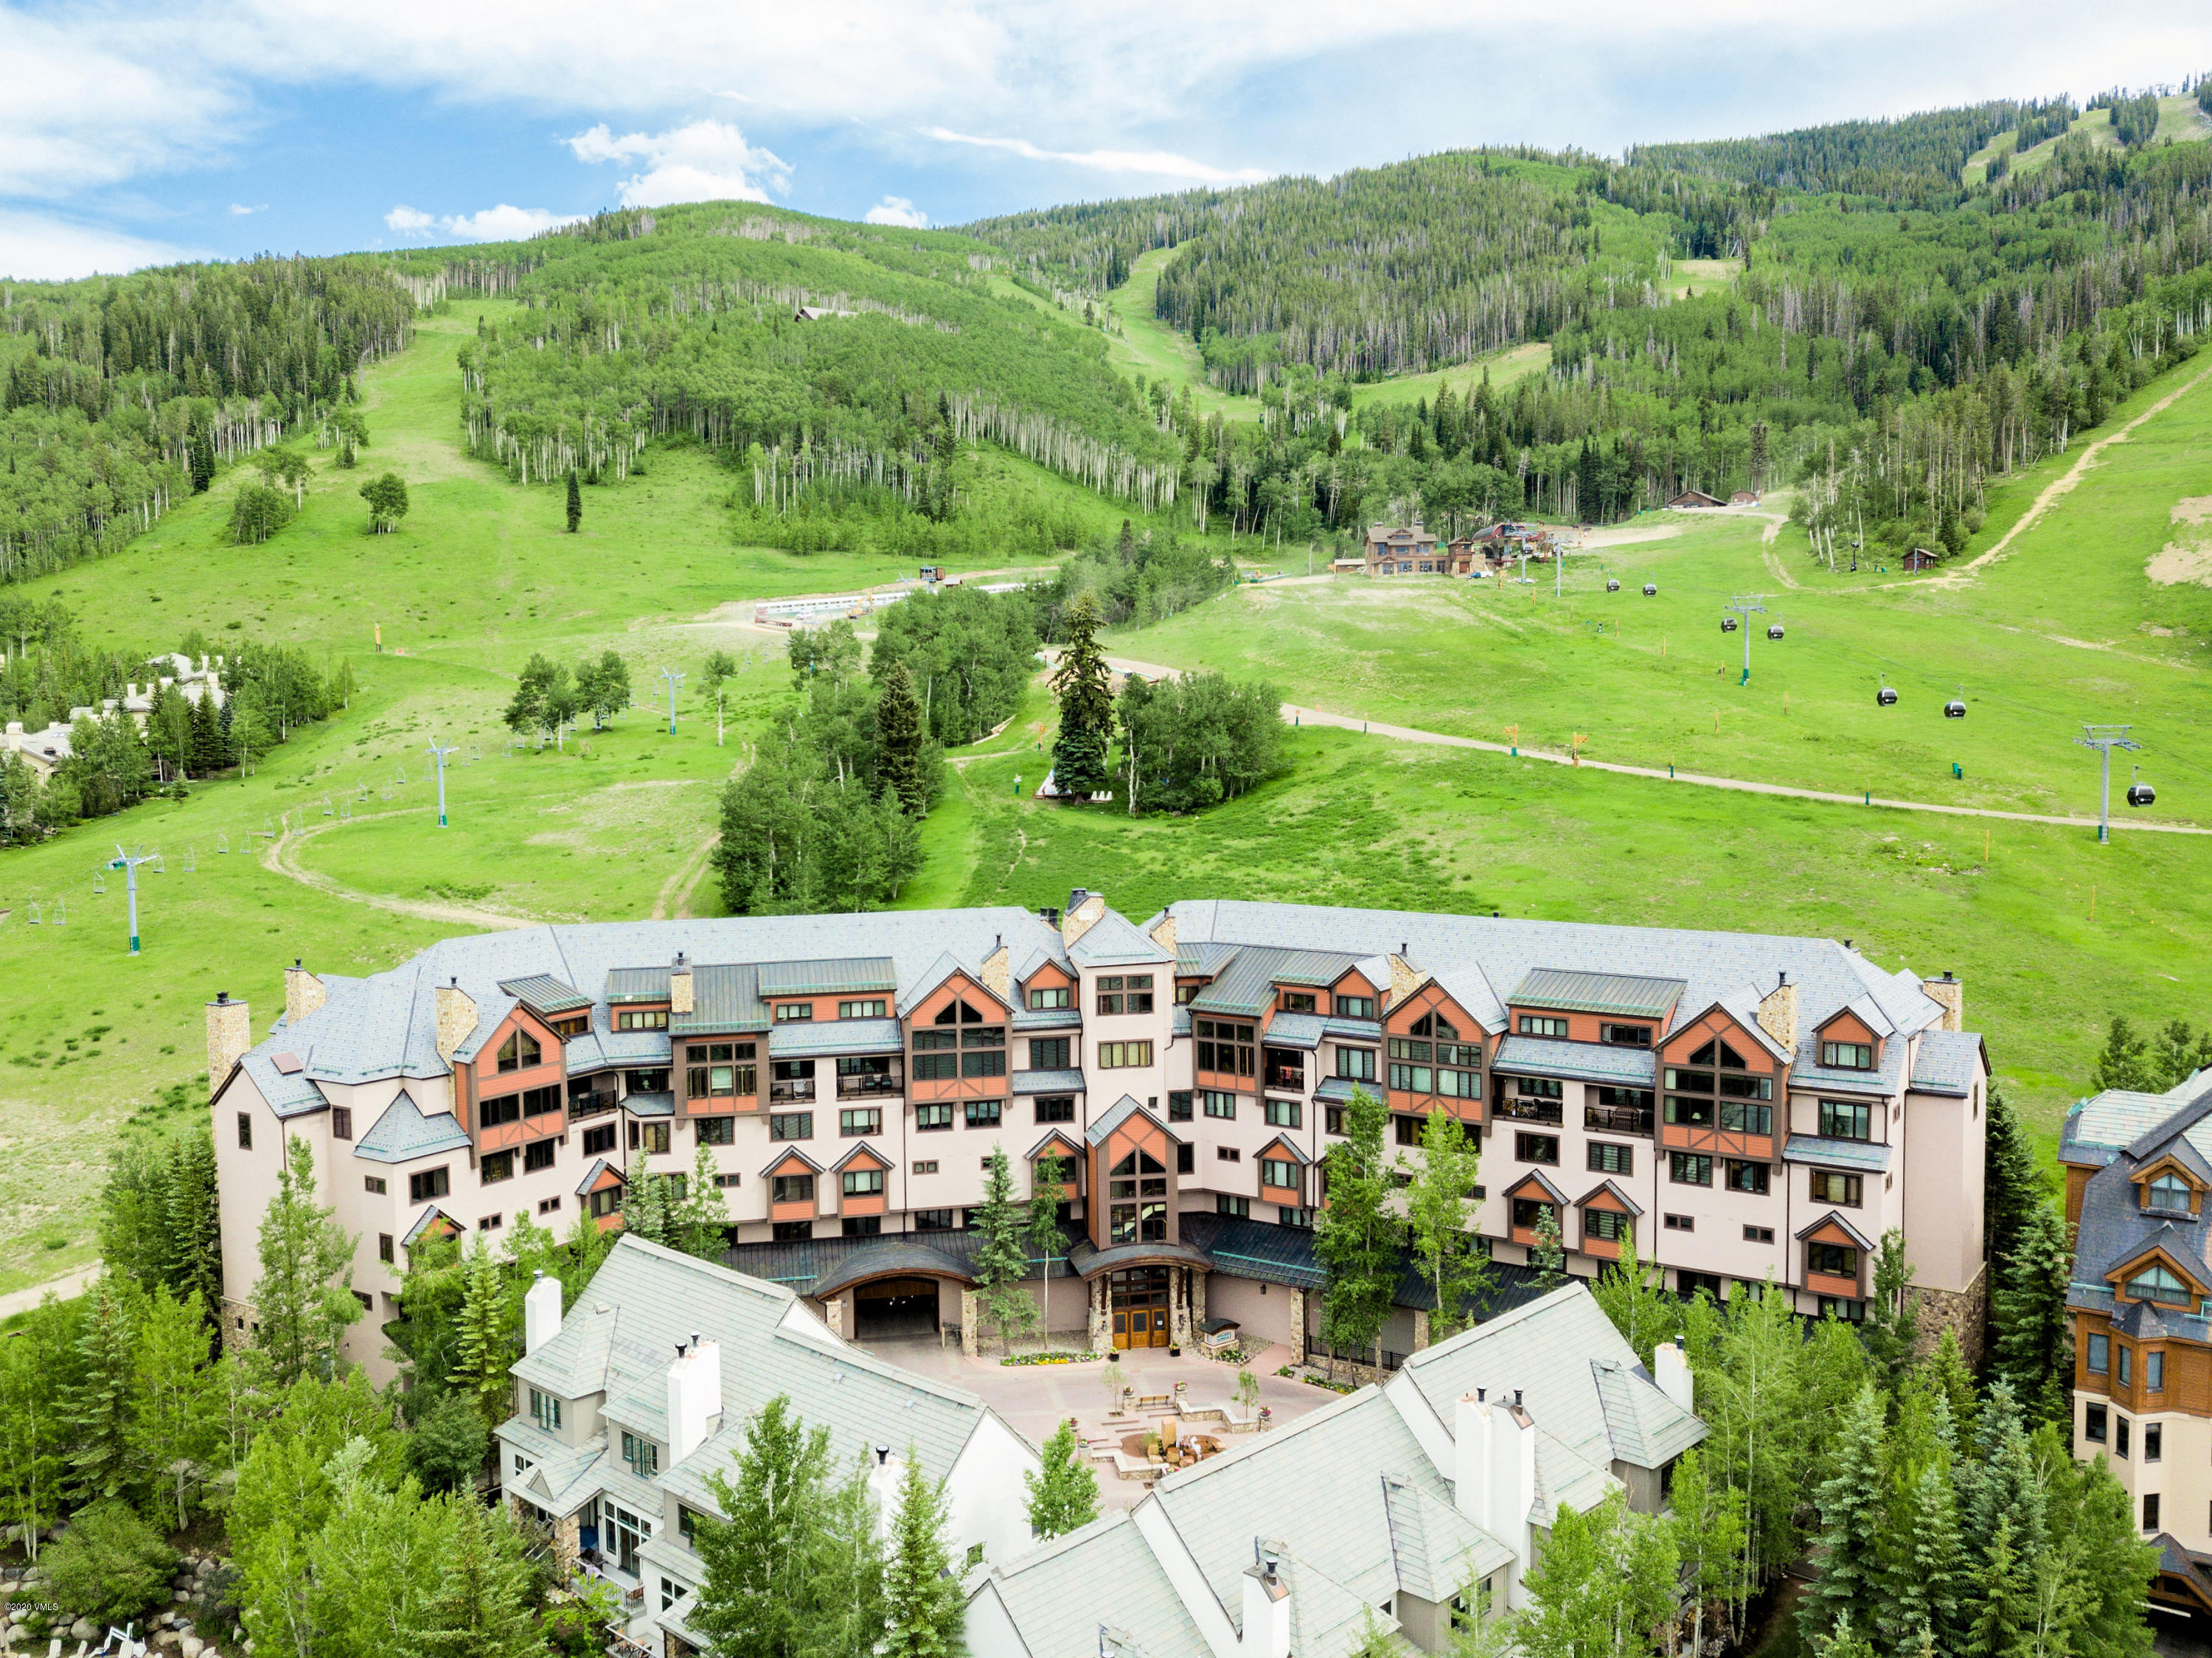 Ski-in to your three bedroom Slopeside getaway. Nestled in one of Beaver Creek's most esteemed neighborhoods, this stately retreat was built with convenience and ease in mind. Cozy up in front of the wood burning fireplace or walk out of your front patio directly to the slopes. Enjoy nights in, in this peaceful home in the heart of Beaver Creek. This timeless luxury retreat offers boundless alpine views from your back door. With an outdoor heated lap pool, a separate children's pool, 3 hot tubs, front desk concierge, a fitness room and more, the amenity package is world class. Welcome to Slopeside living. ----------------------------------------------- -------------- Beaver Creek the motto is ''Not Exactly Roughing It'' and those who choose to live in this gated and private residential community set amidst the grandeur of the Rocky Mountains certainly echo the sentiment. Beaver Creek's superior amenities, Colorado Charm, and overwhelming natural beauty present an incomparable venue for mountain living, year-round recreation and cherished family traditions. Your ultimate luxury escape.